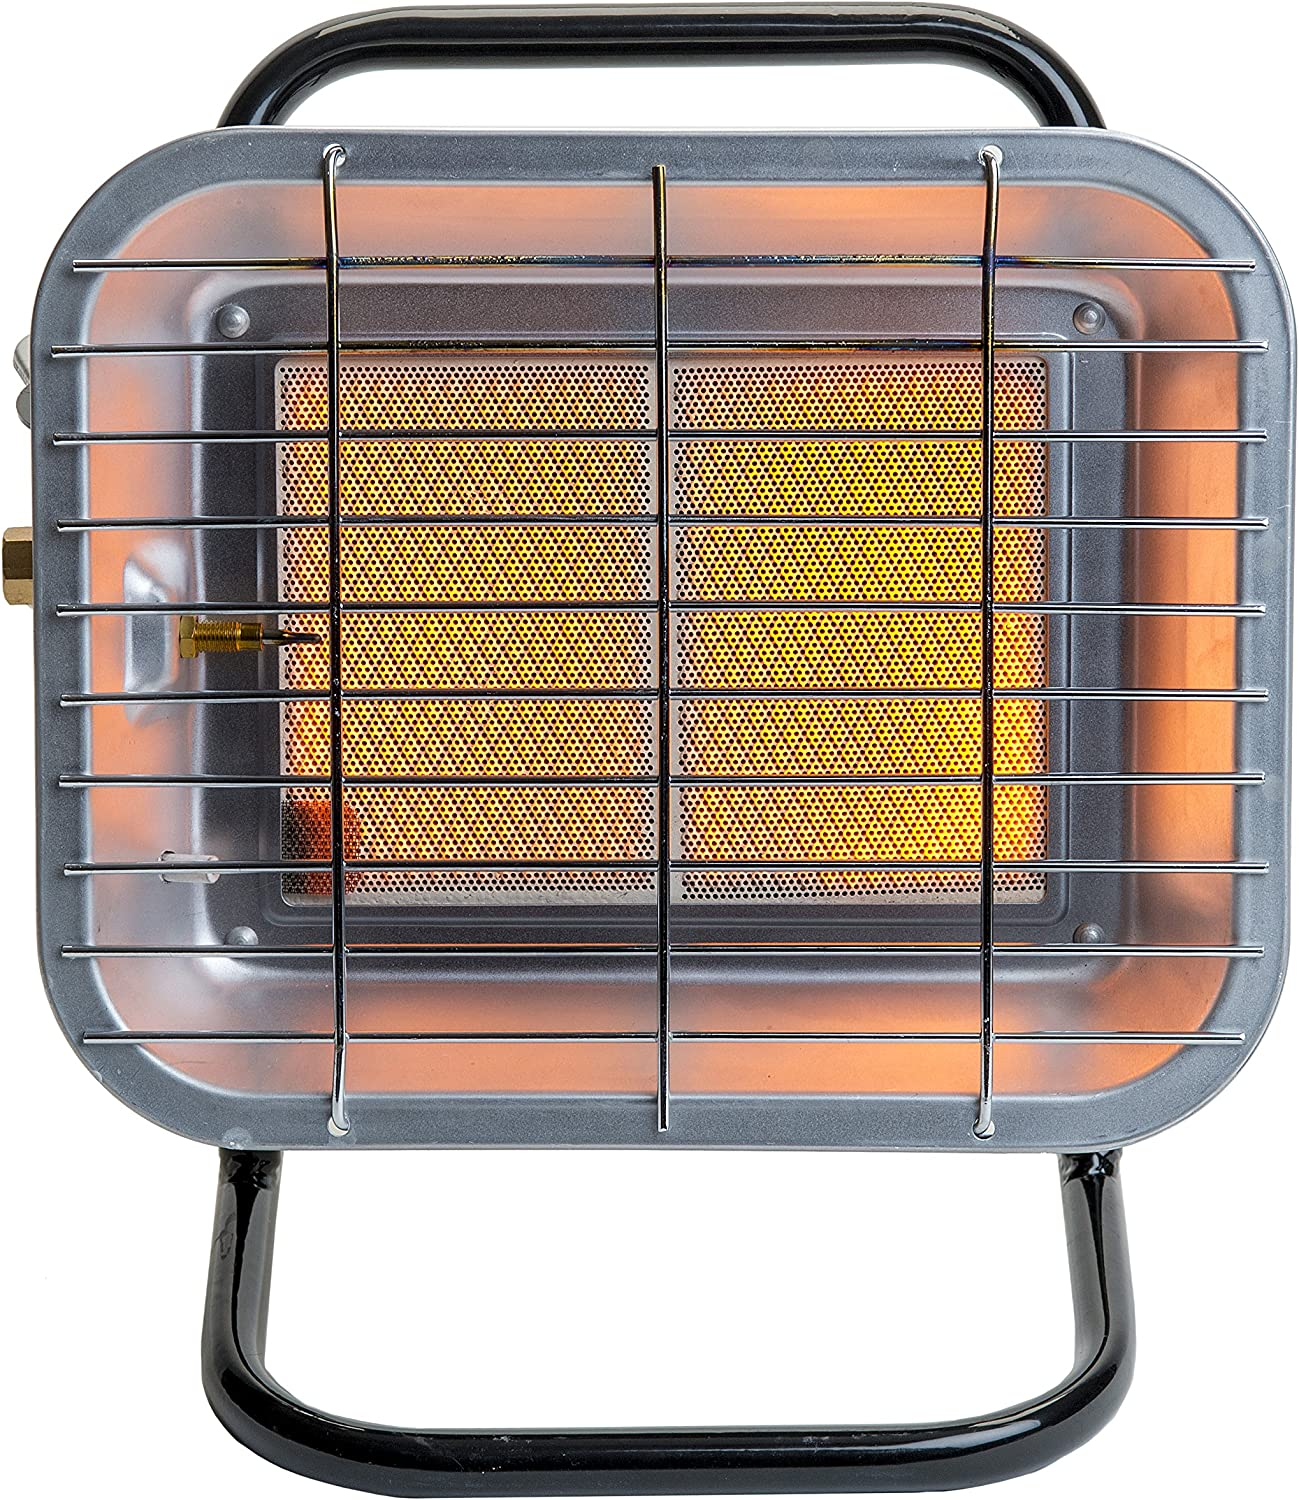 Thermablaster 15,000 BTU Infrared Portable Heater, Black